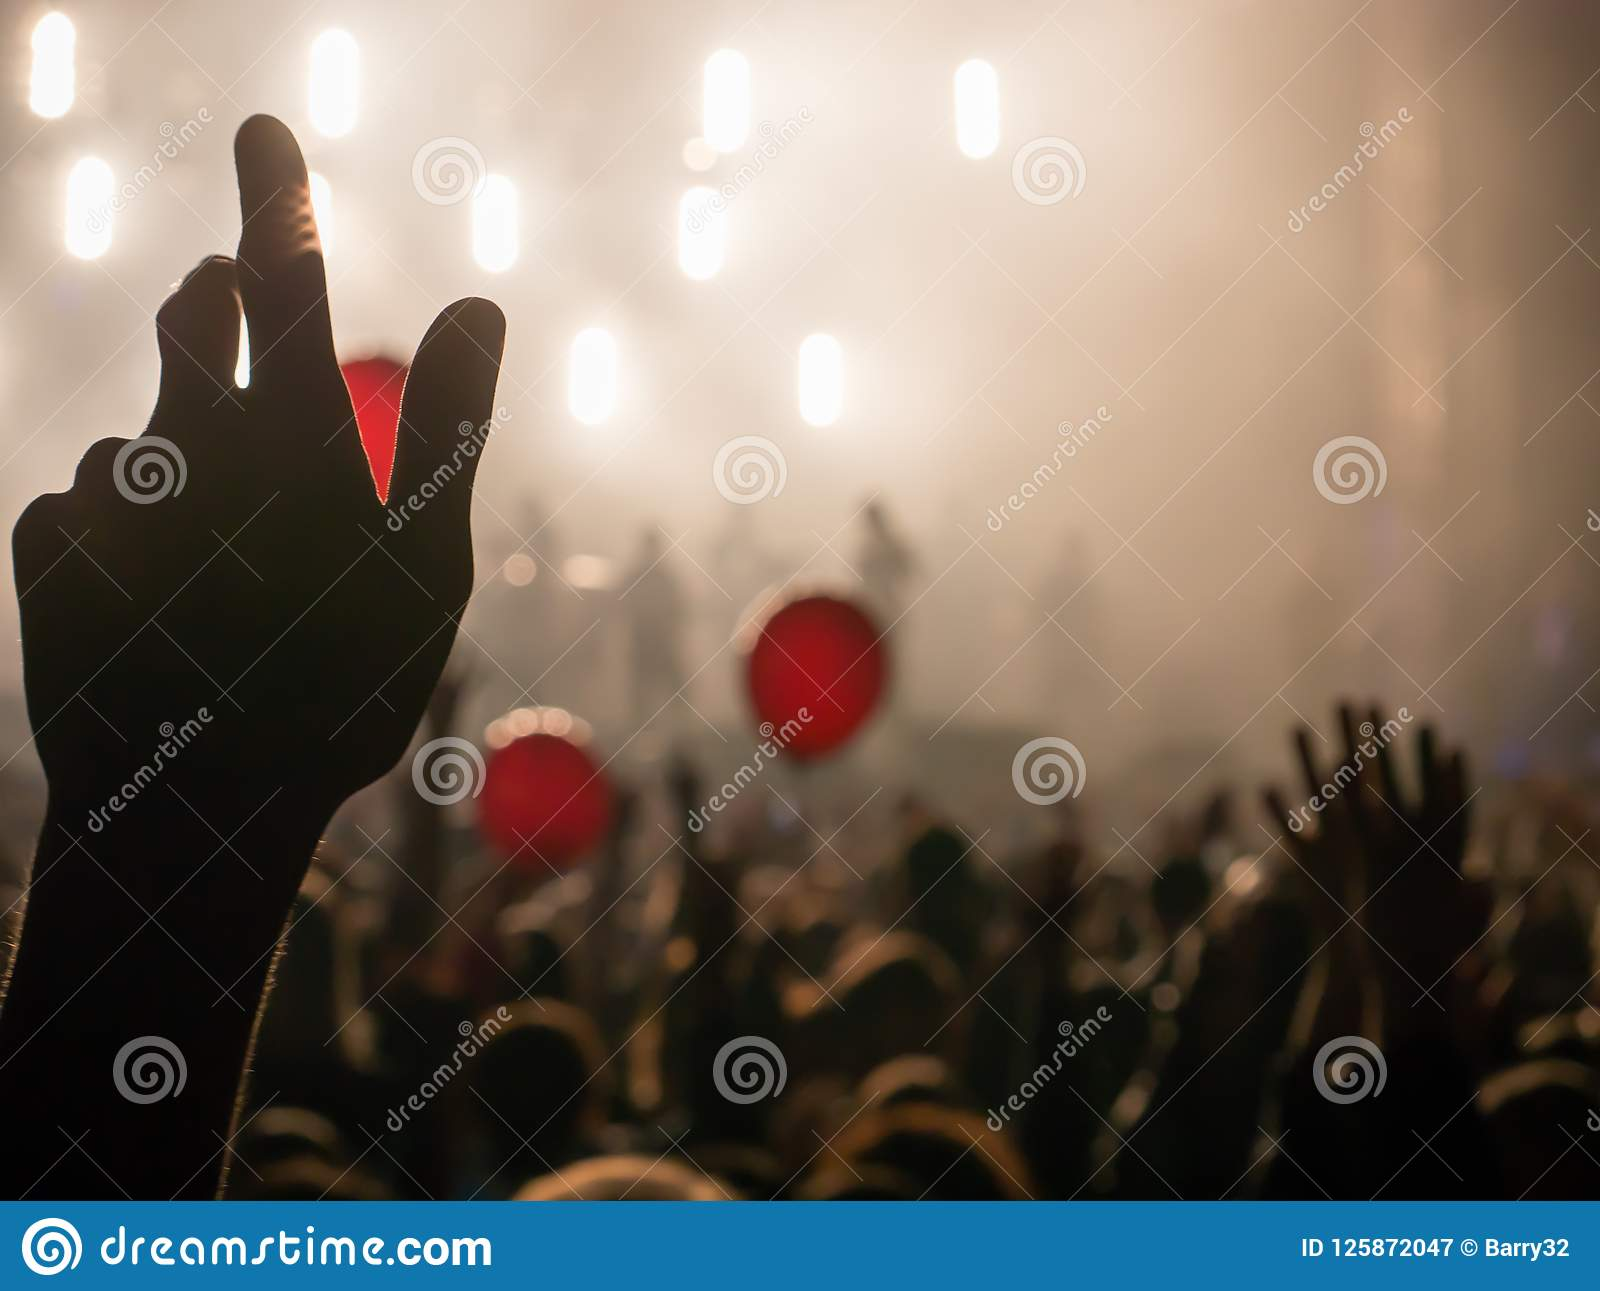 Hand in the air during rock concert silhouetted against bright lights